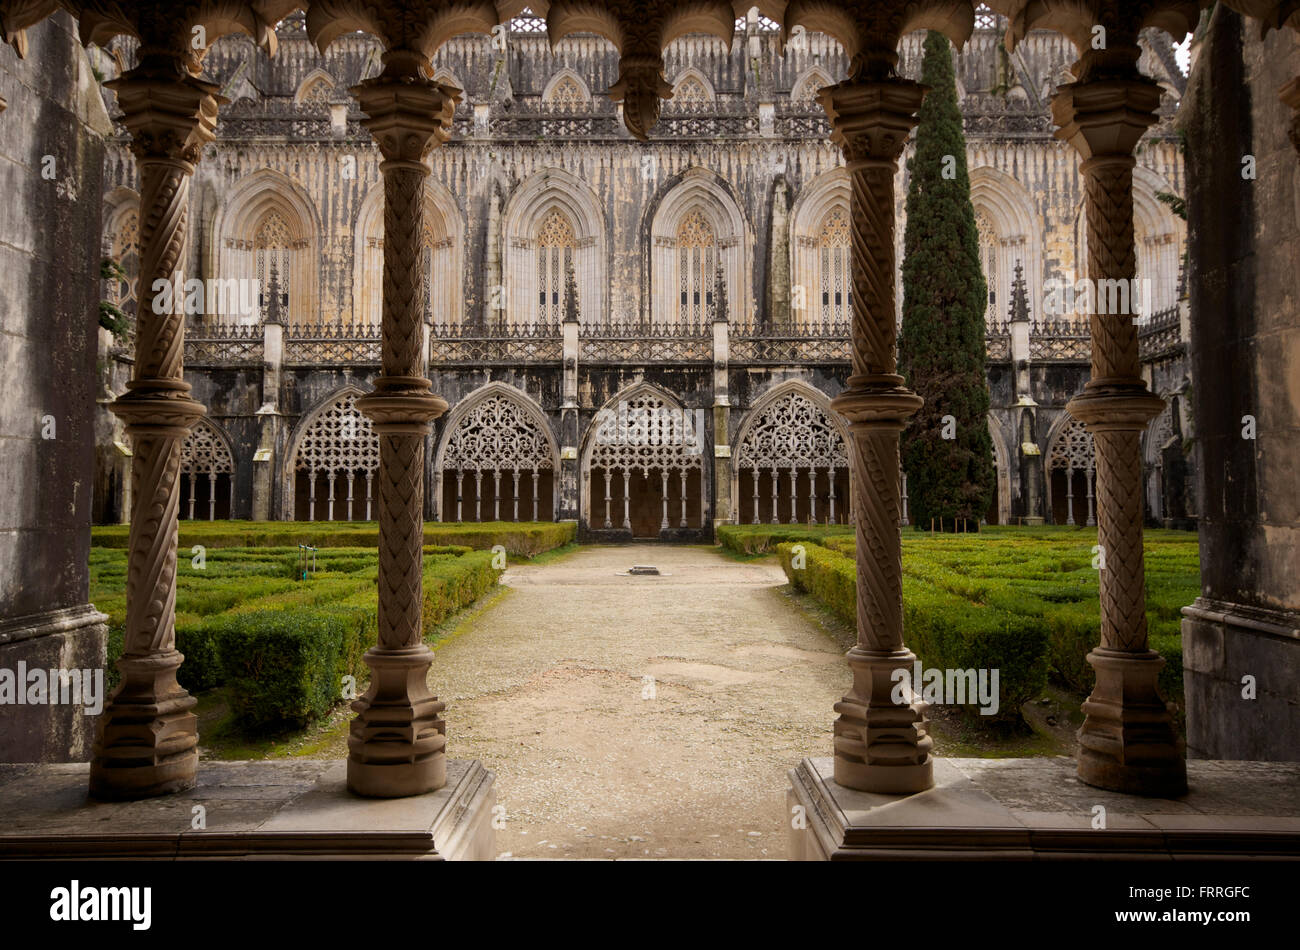 Cloisters at Batalha monastery, Portugal - Stock Image